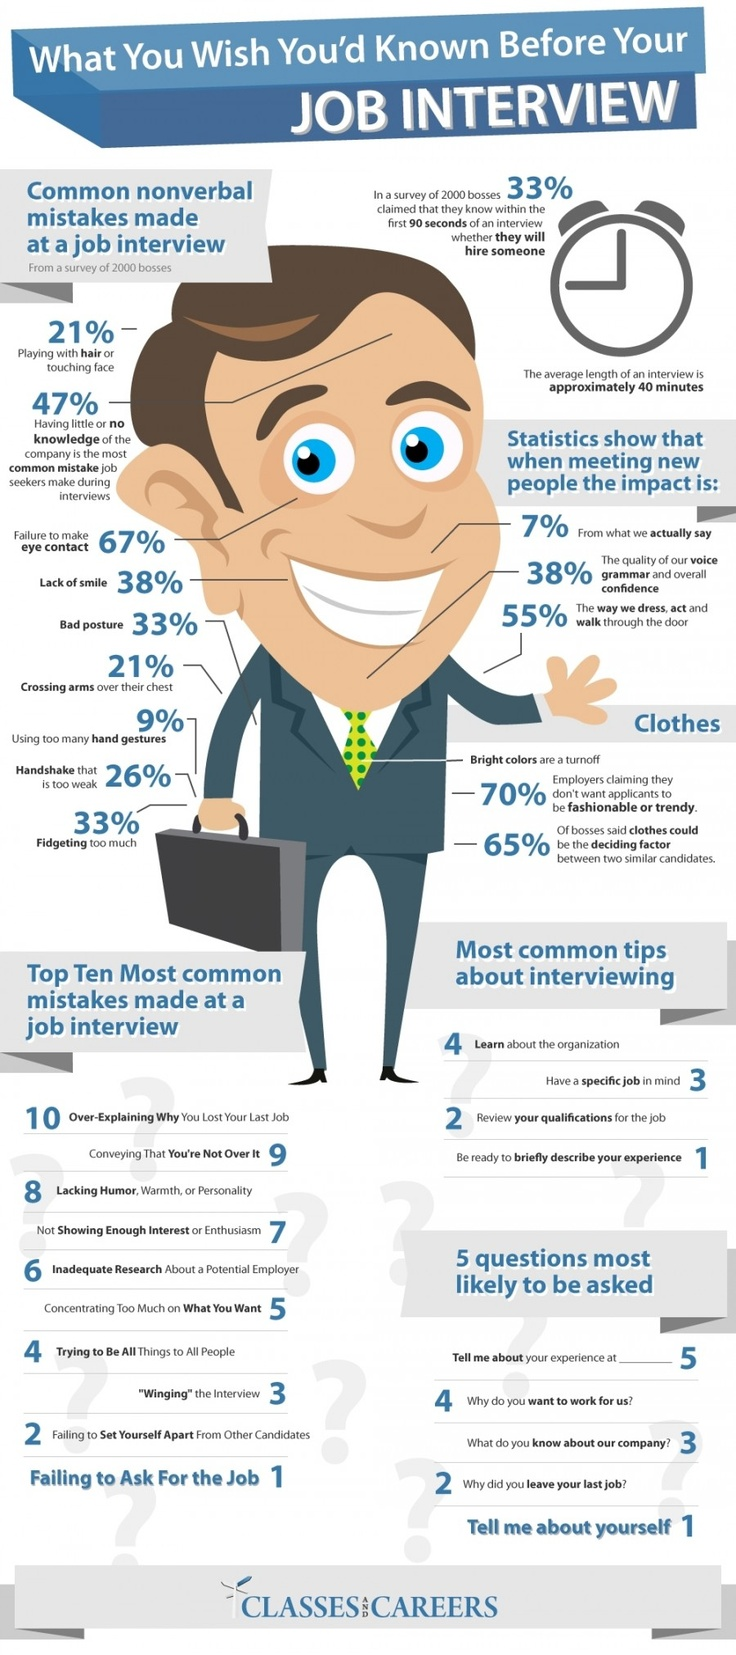 What You Wish You'd Known Before Your Job Interview #infographic